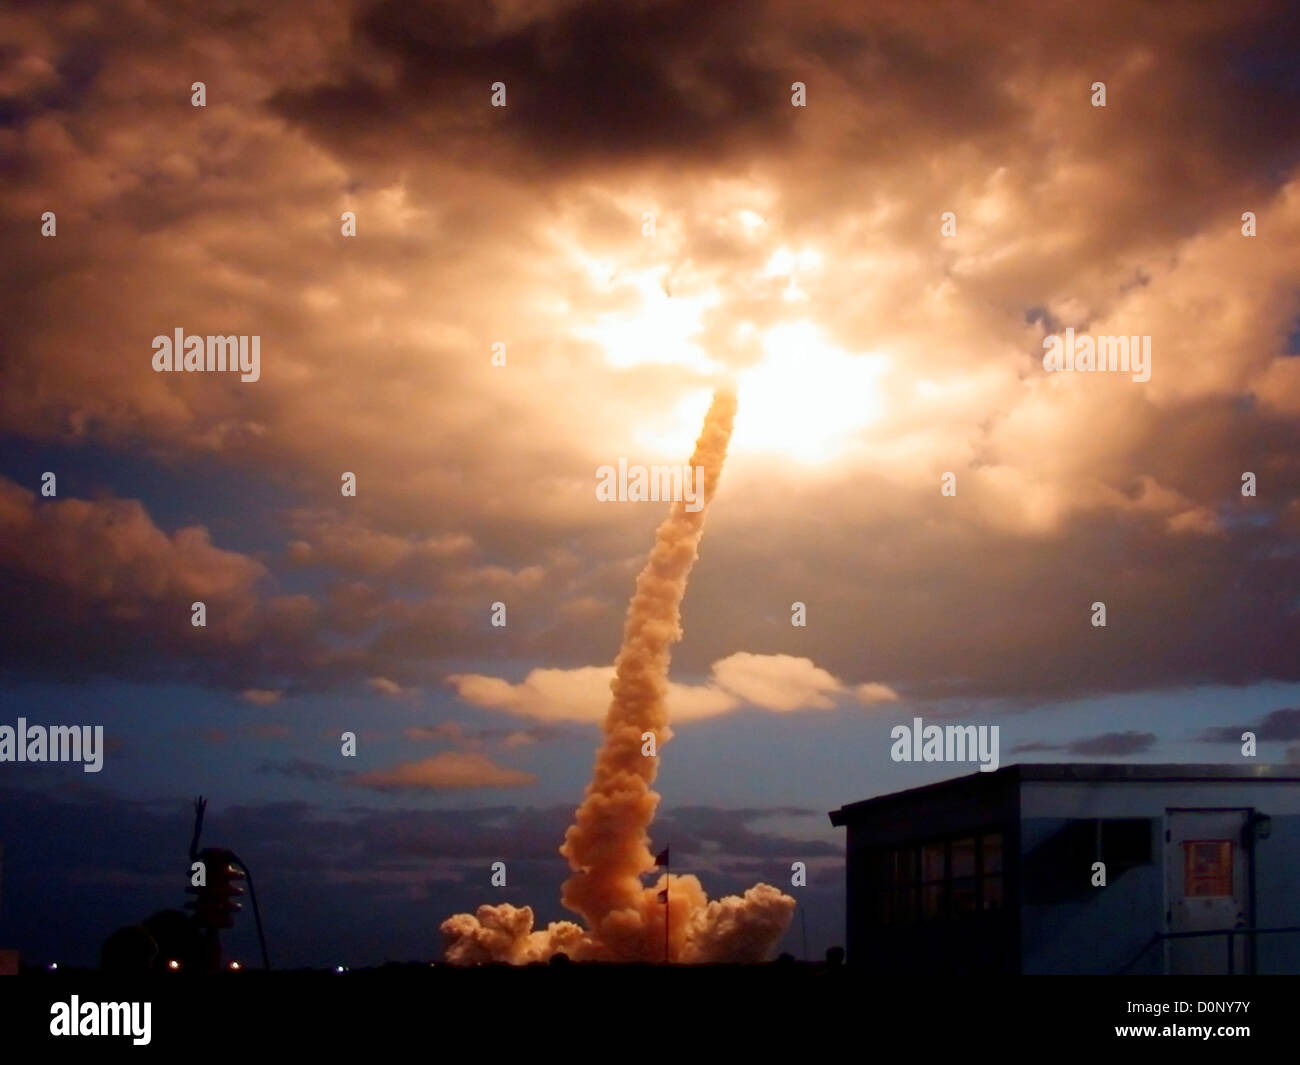 Launch of STS-109 Shuttle Mission - Stock Image